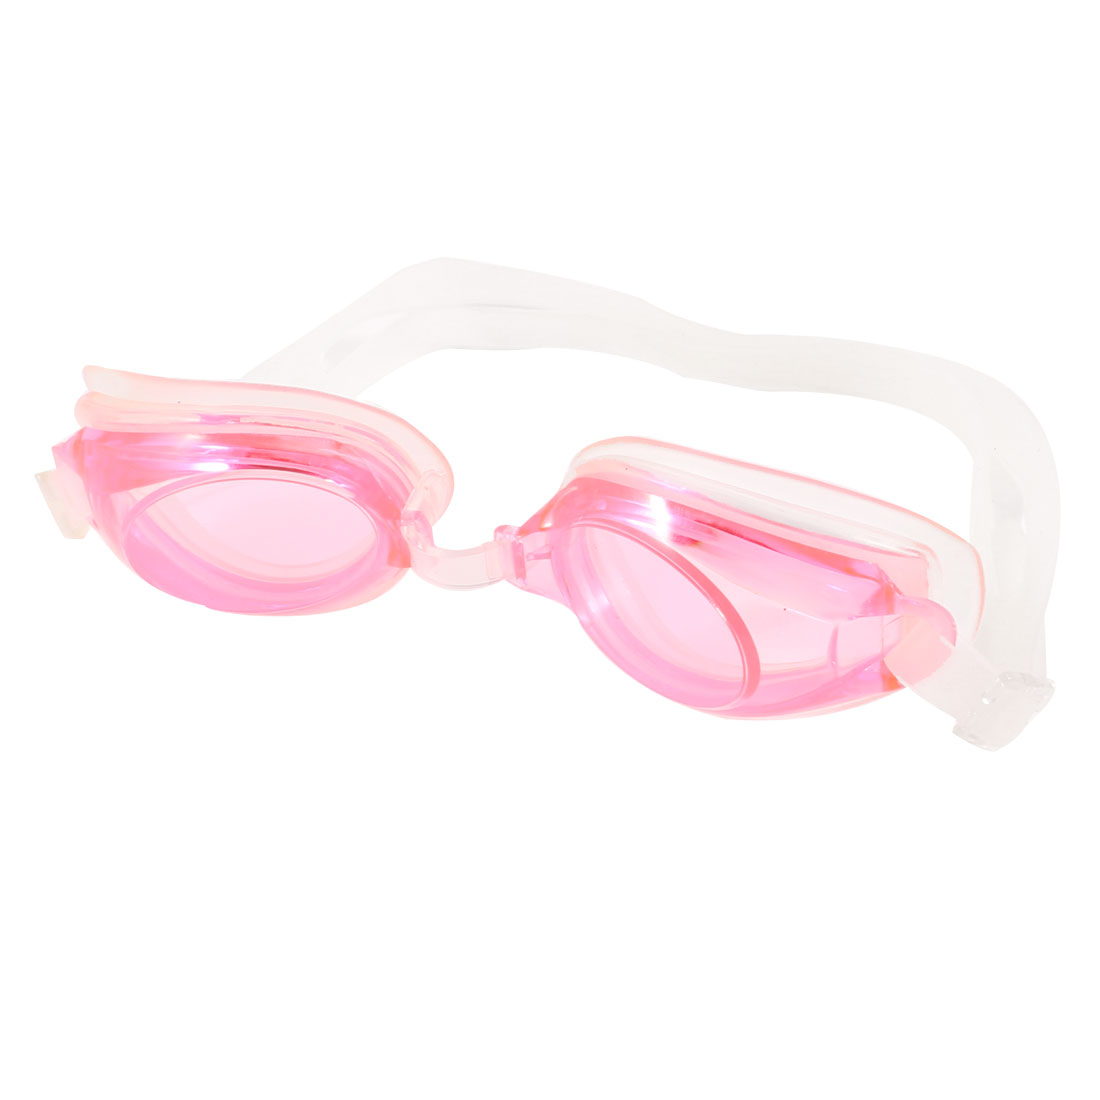 Children Adjustable Headstrap Pink Clear Swimming Goggles Eyeglasses